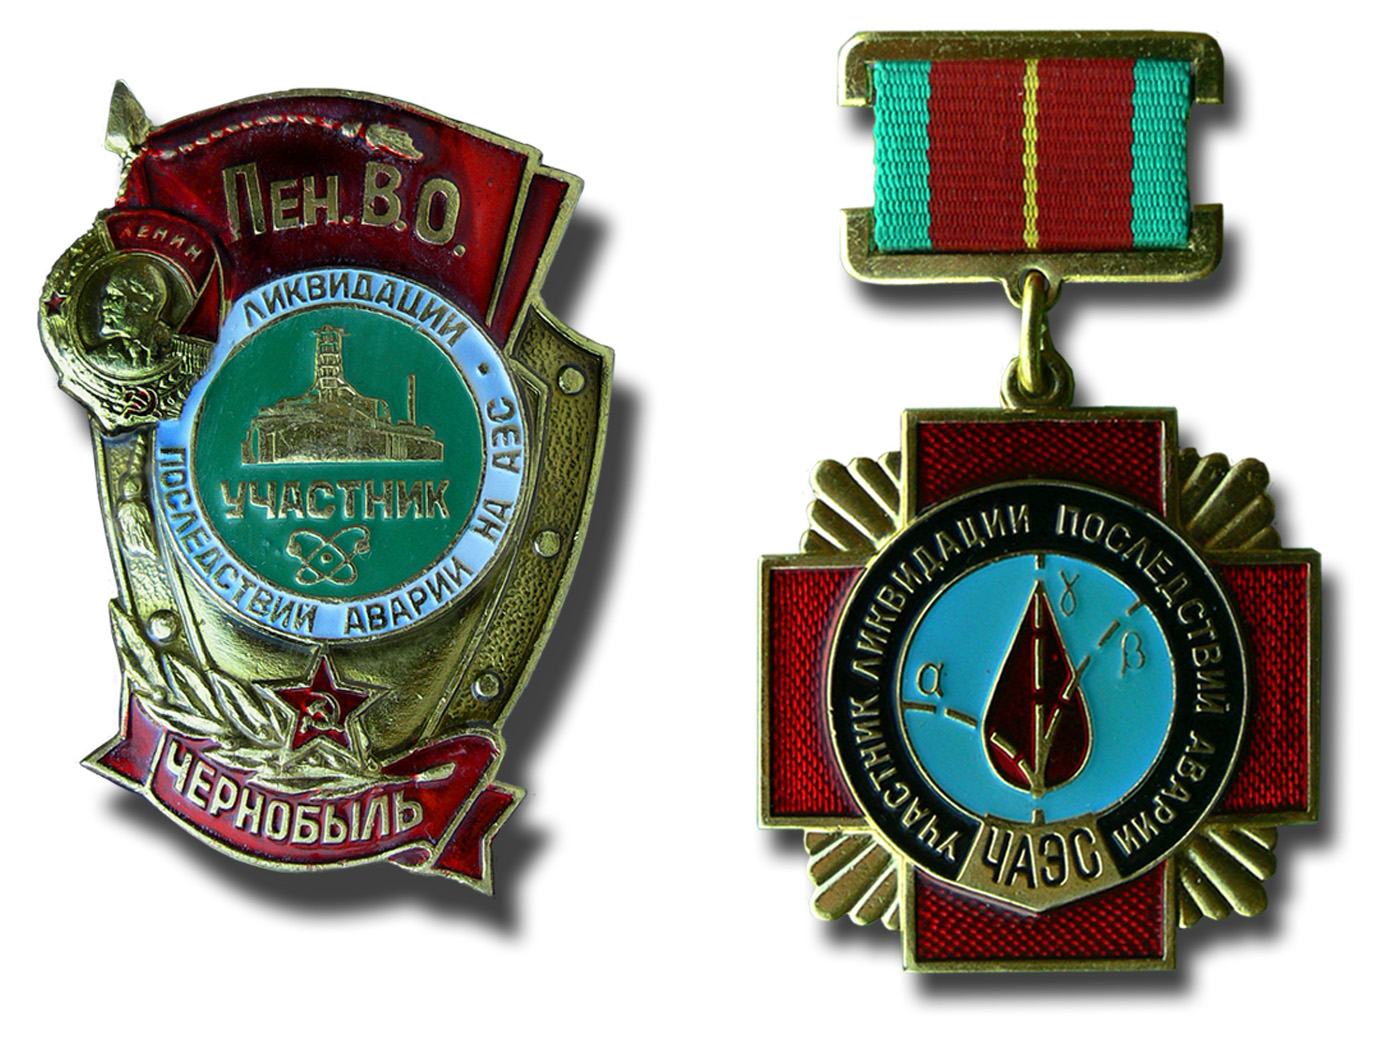 Soviet badge awarded to Chernobyl liquidator